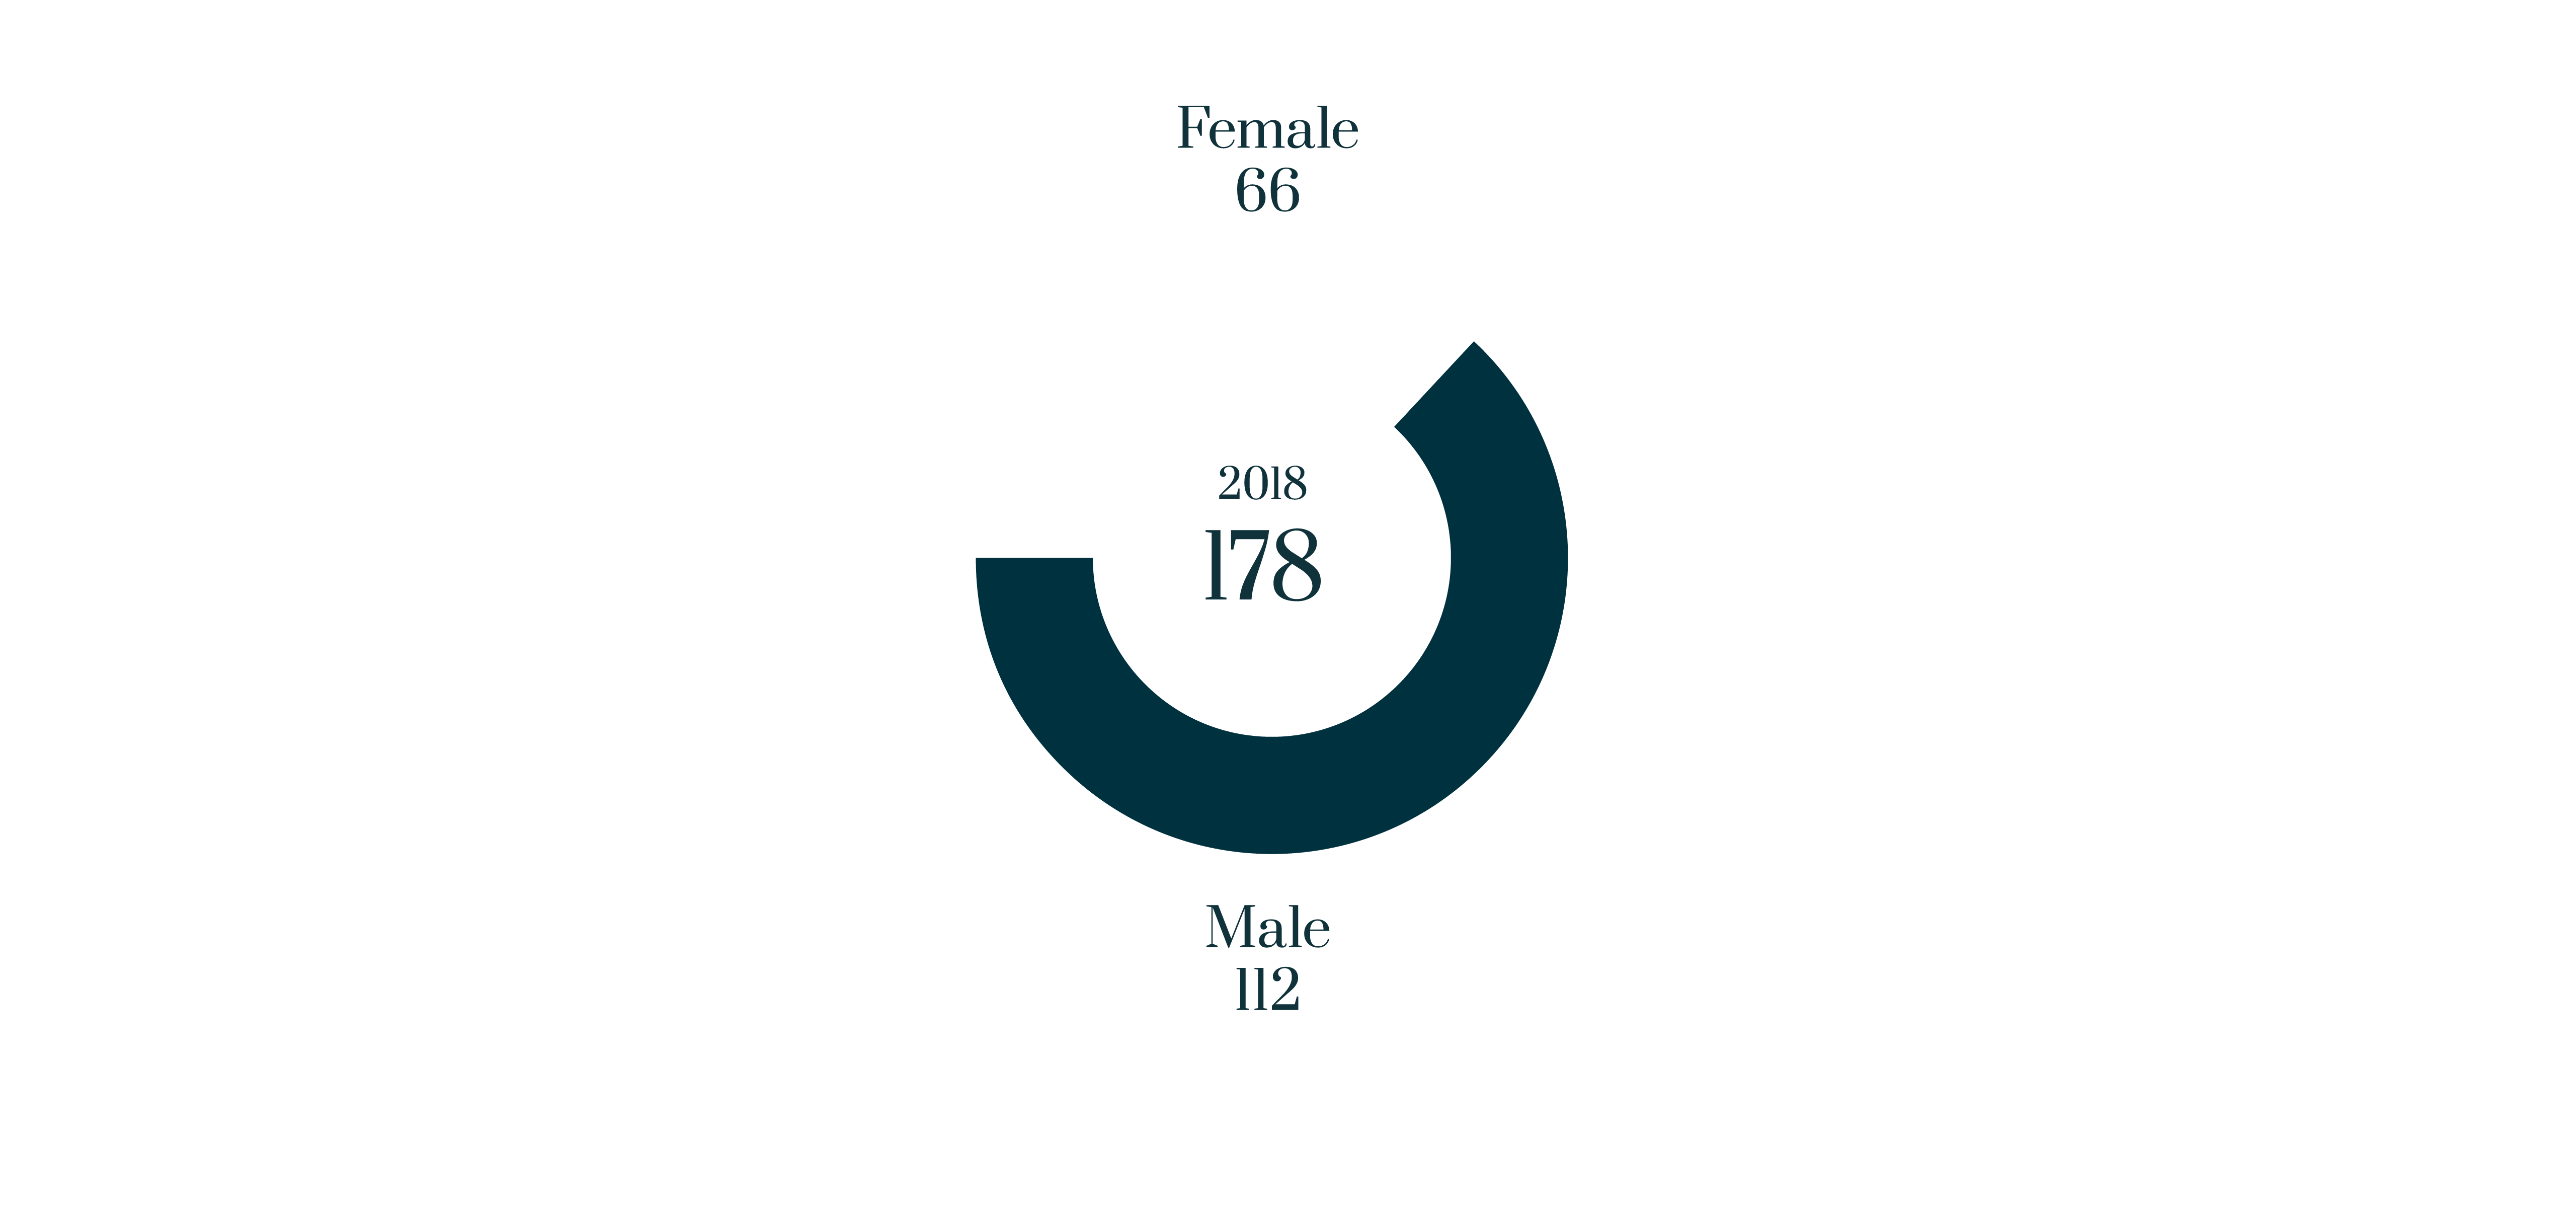 Male/female